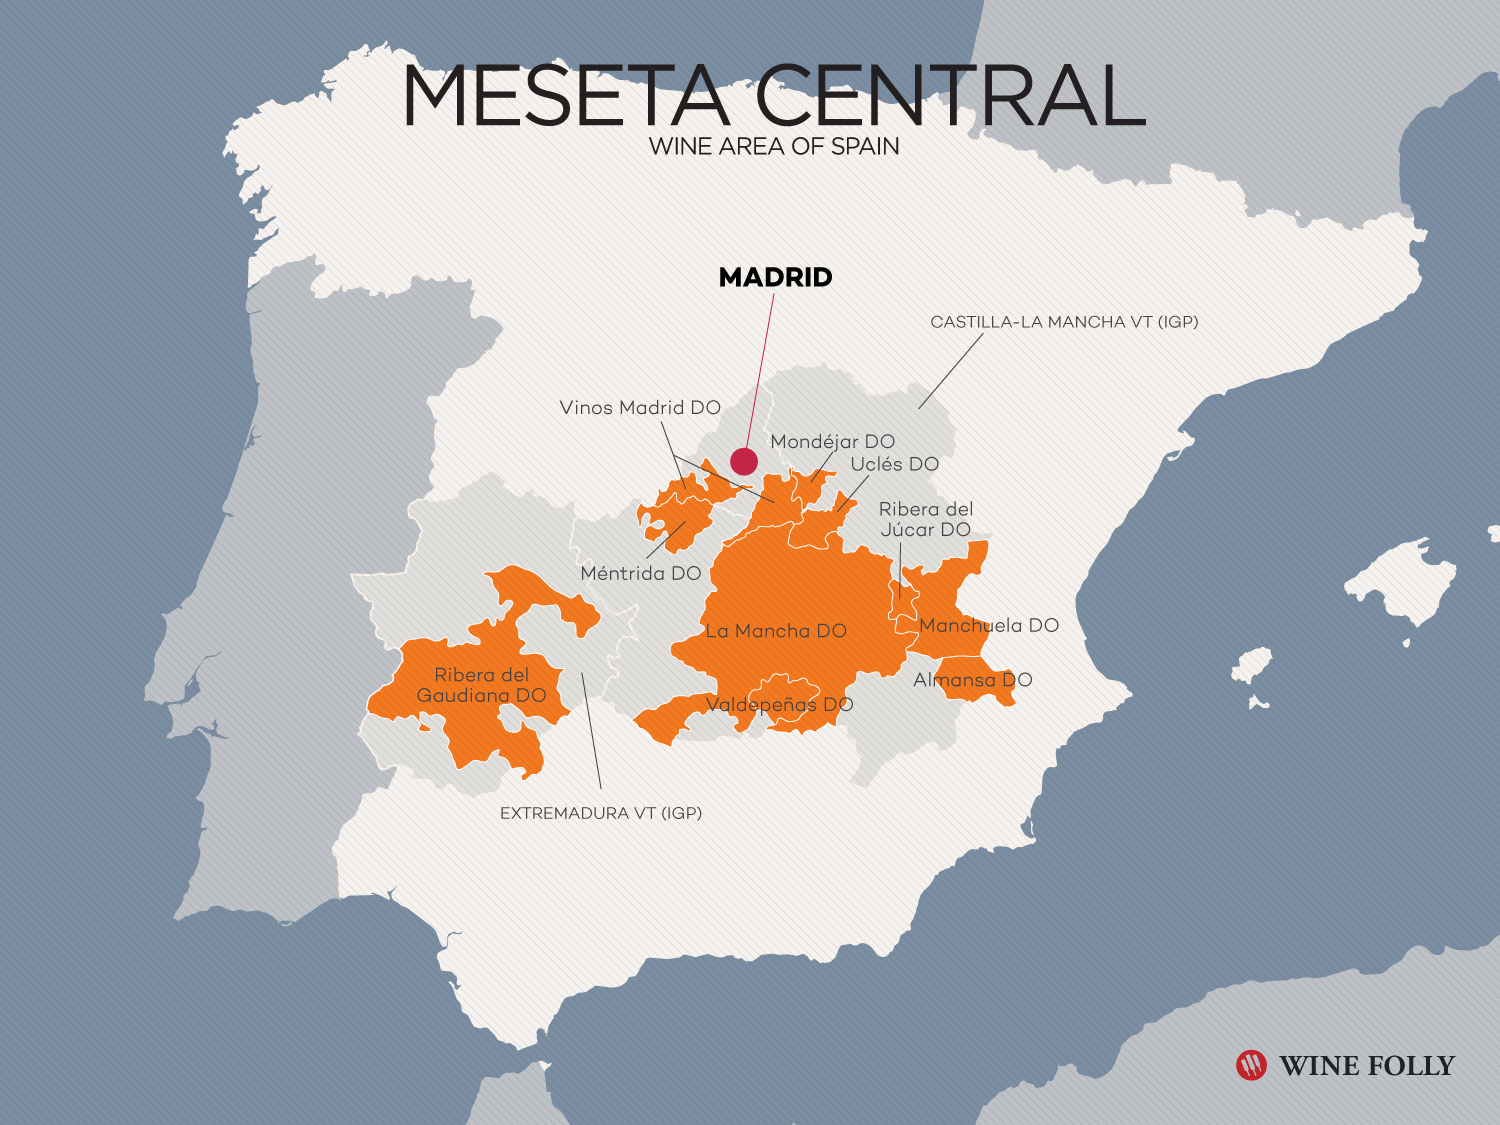 Spain Castilla-La Mancha Central Plateau Region Map by Wine Folly